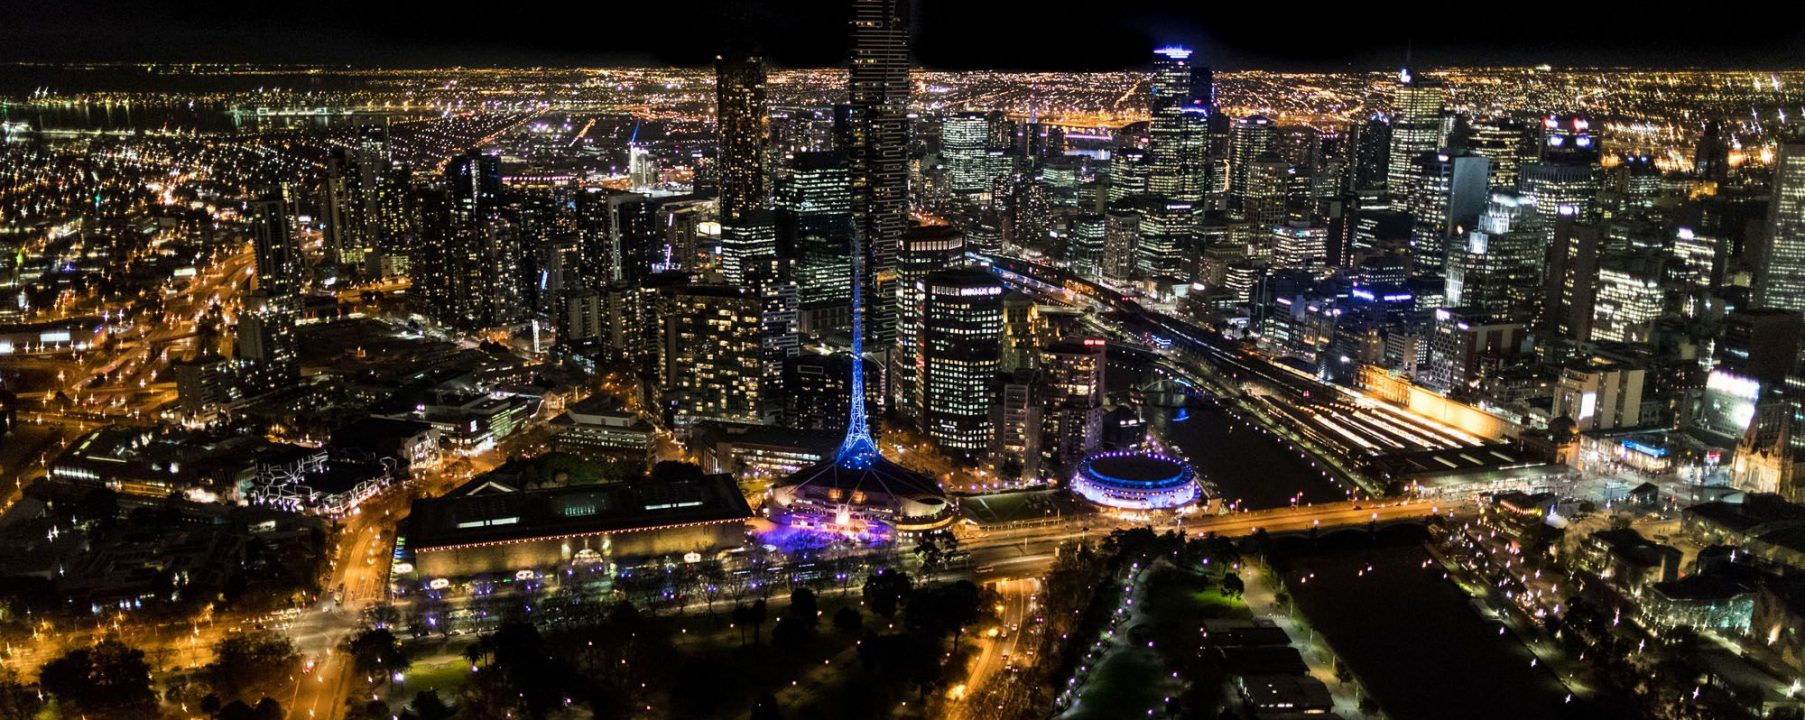 Melbourne Night Helicopter Aerial Photograph